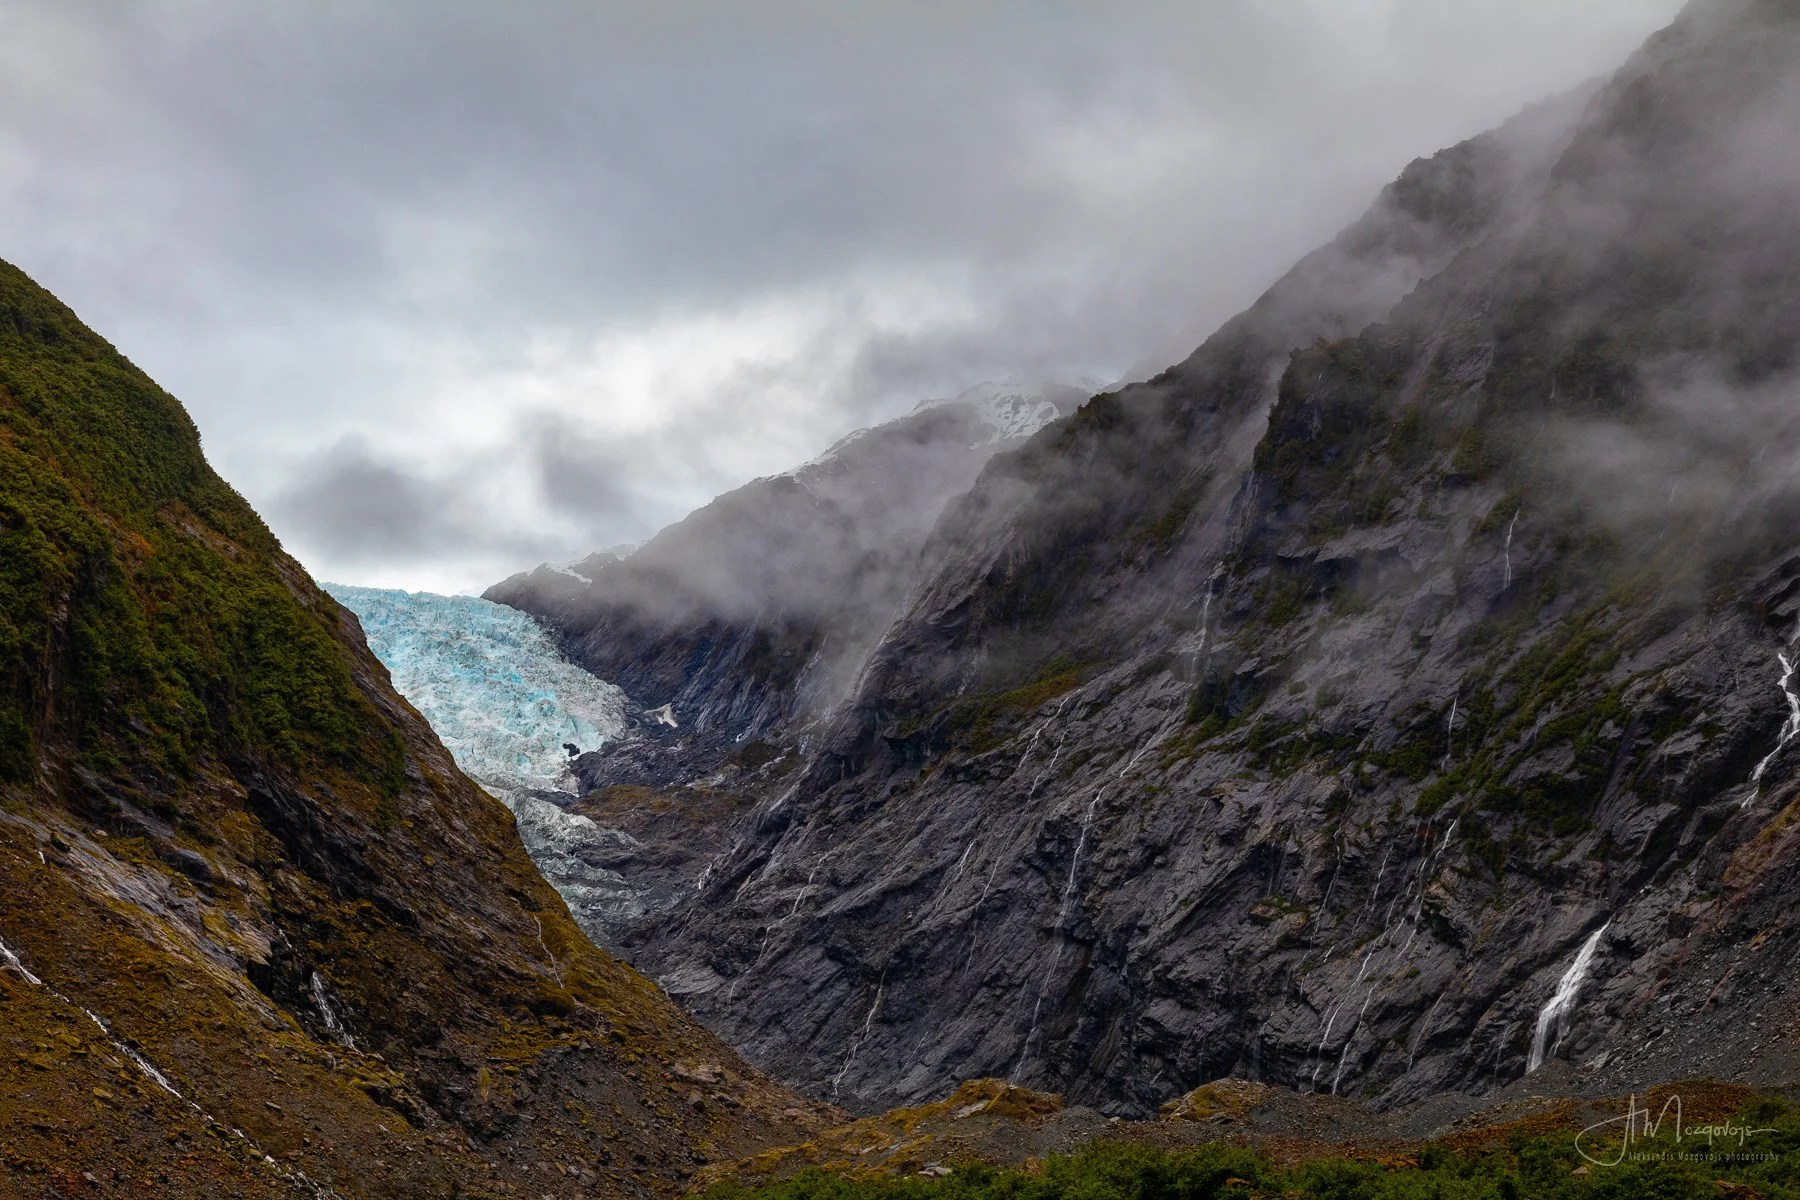 Franz Josef Glacier on a rainy day